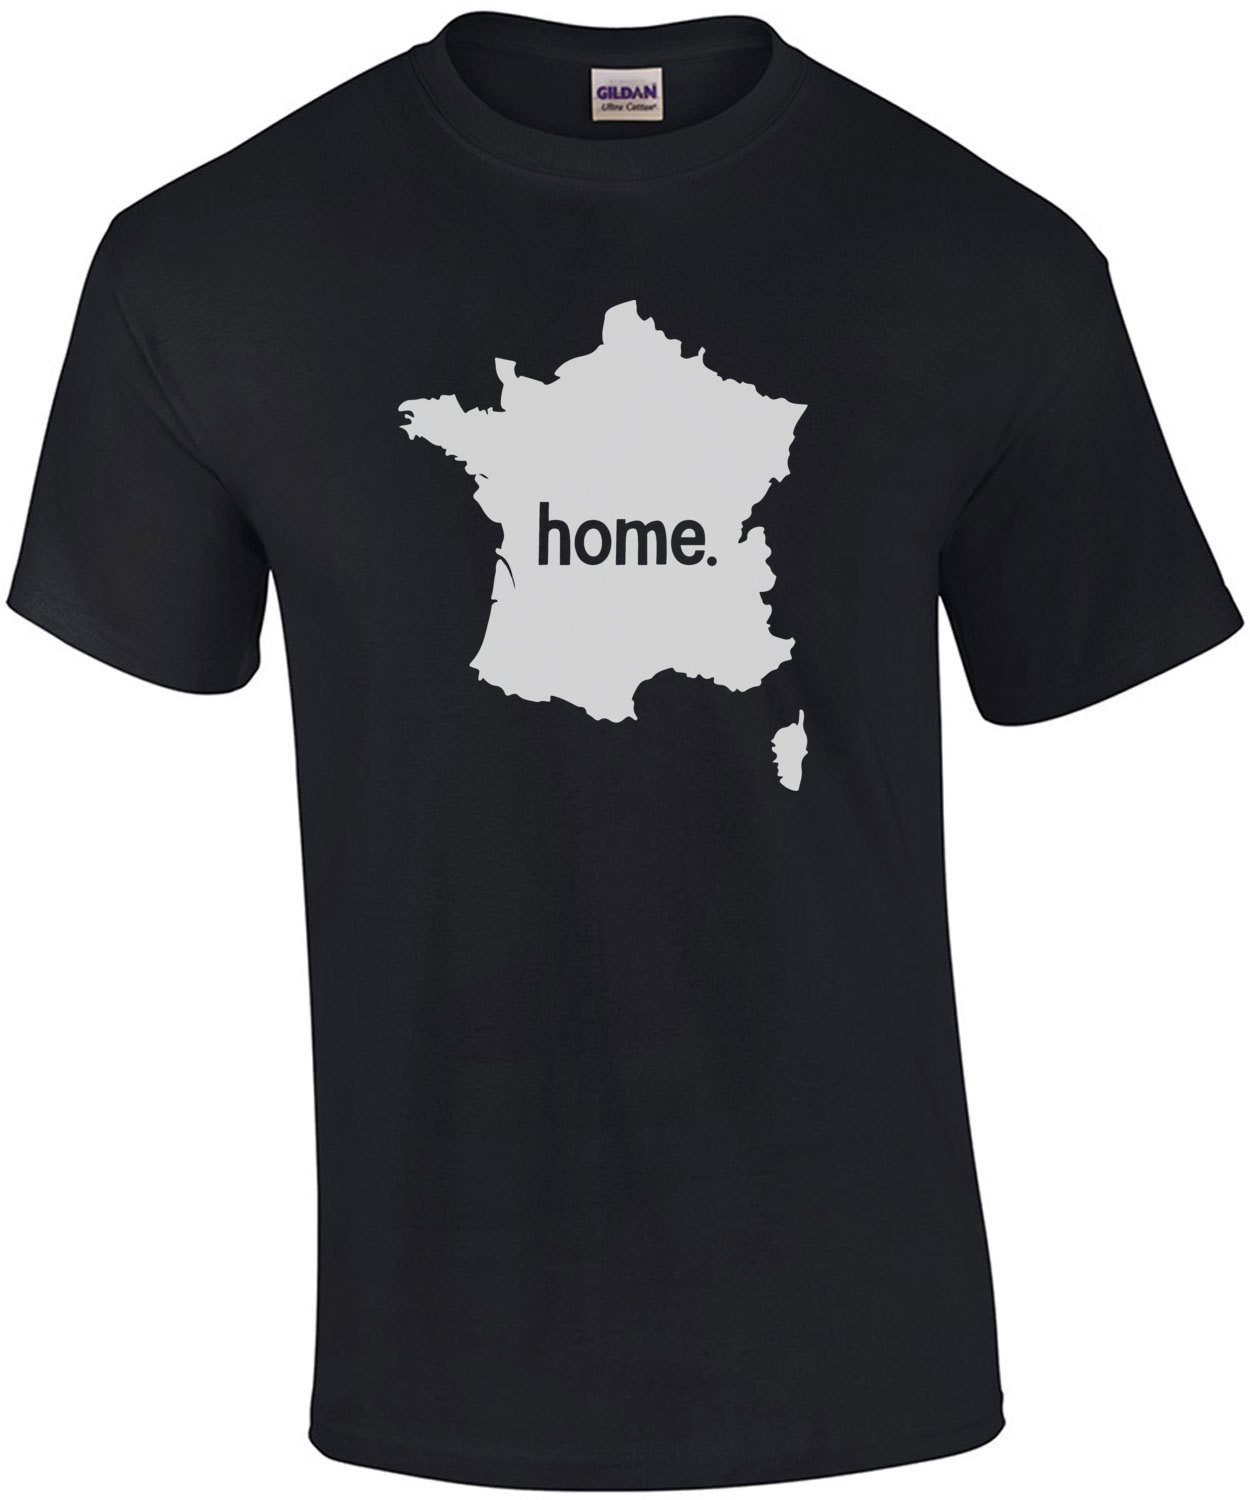 Home France T-Shirt